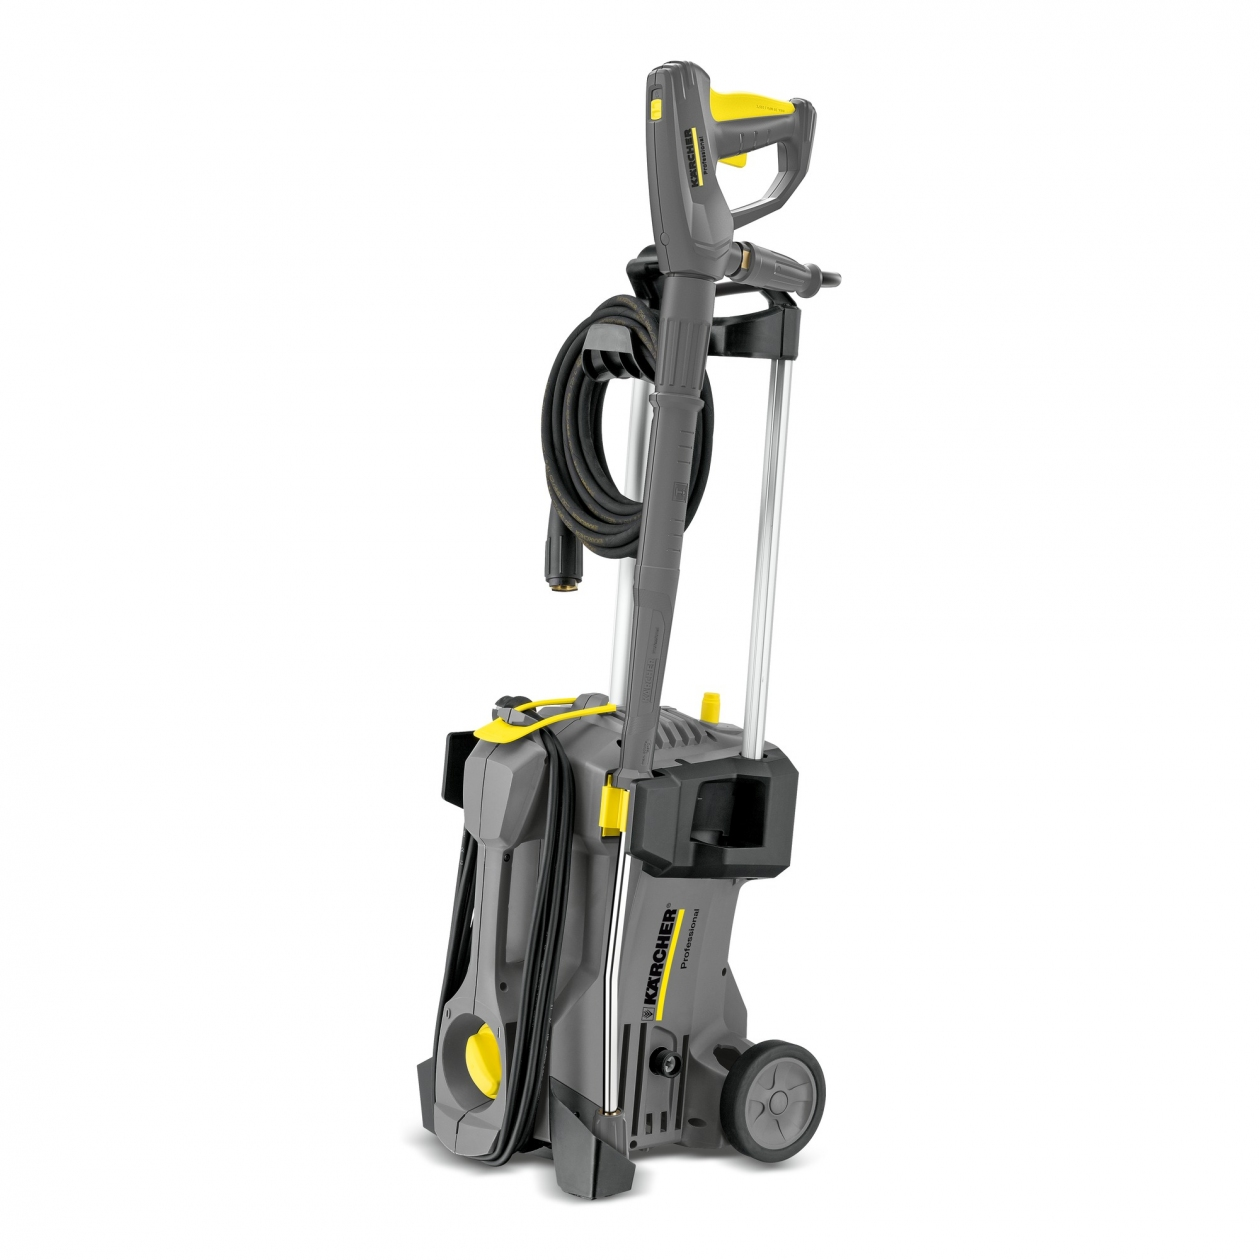 Karcher Professional HD 5/11P Pressure Washer